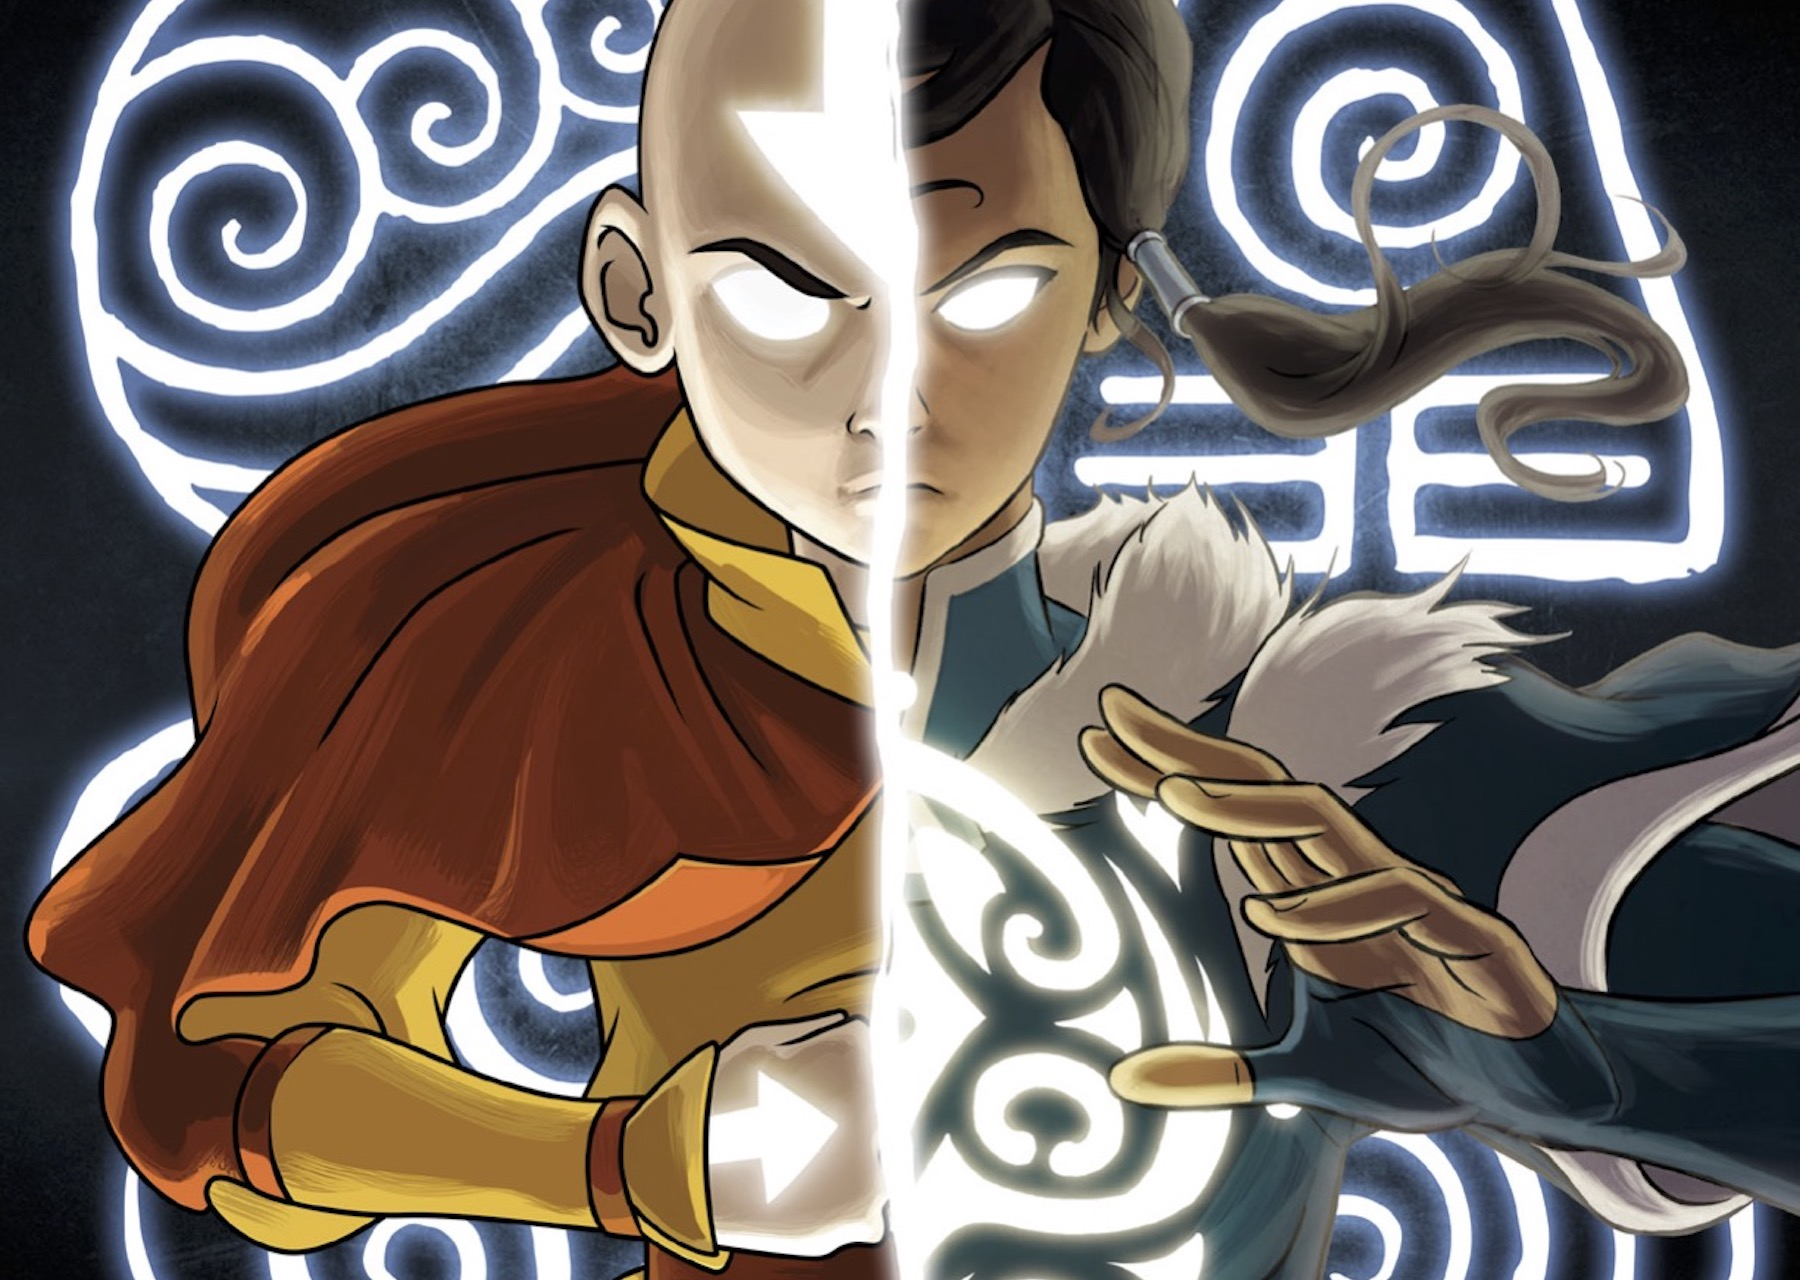 Artwork of Aang and Korra from Avatar Legends: The Roleplaying Game